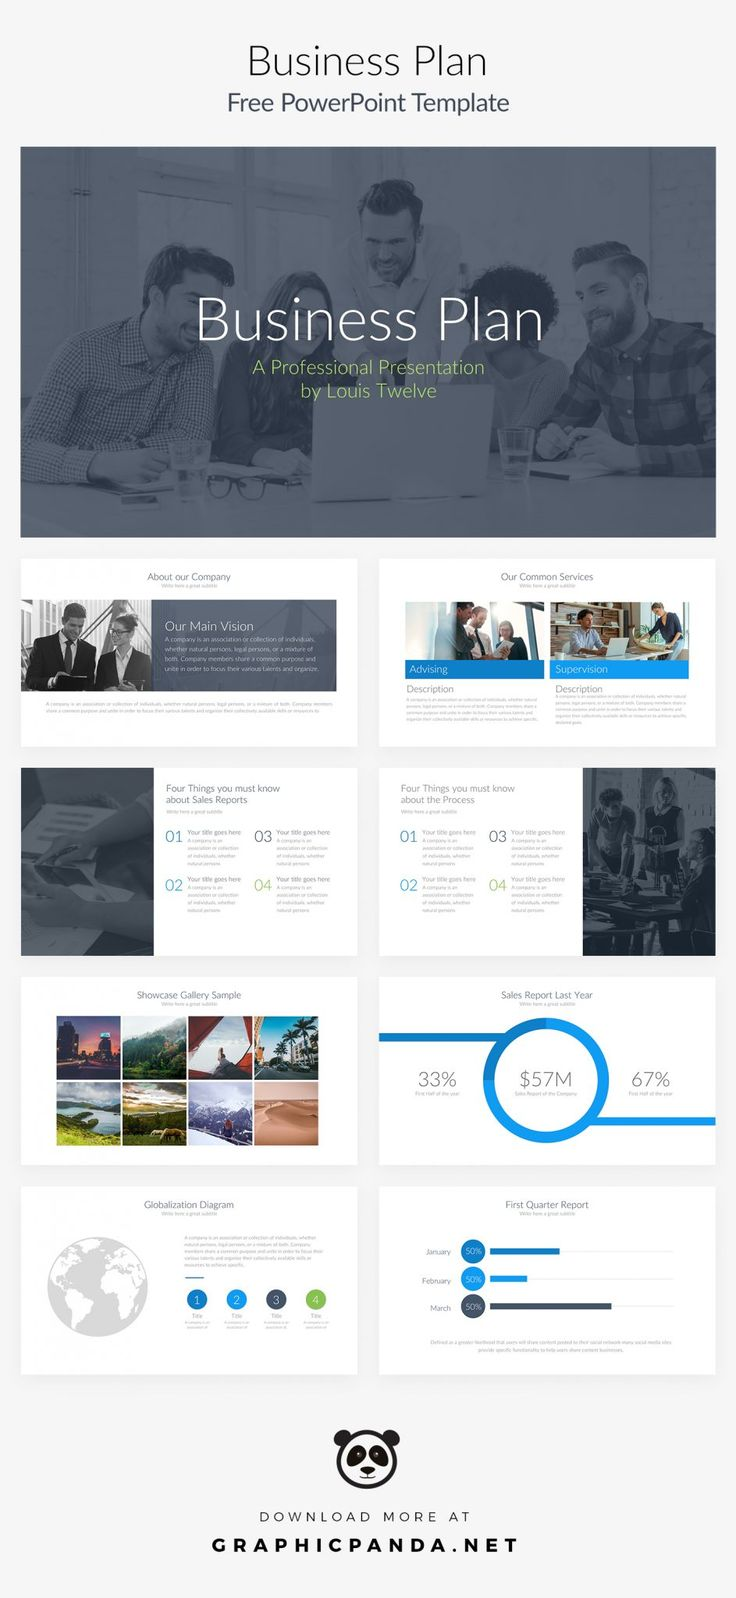 Best Free Powerpoint Templates Images On Pinterest Keynote - Awesome free pitch deck template scheme